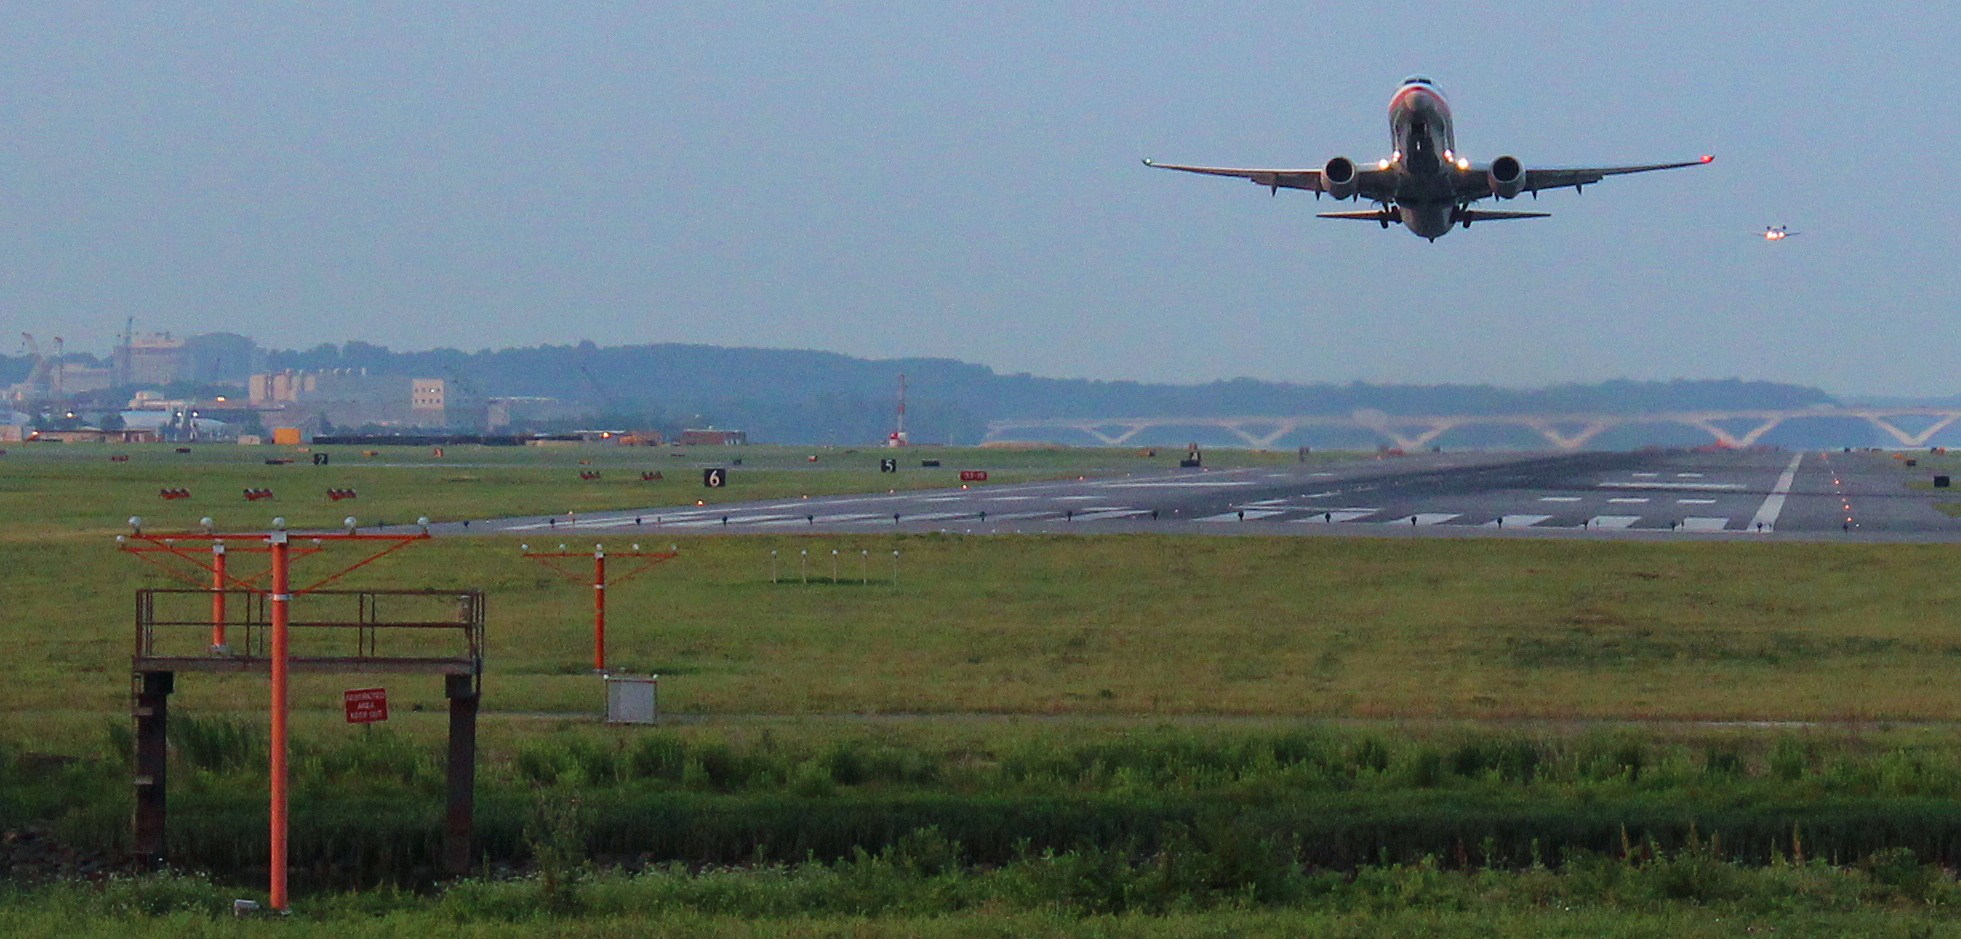 14 Reagan Takeoff.jpg